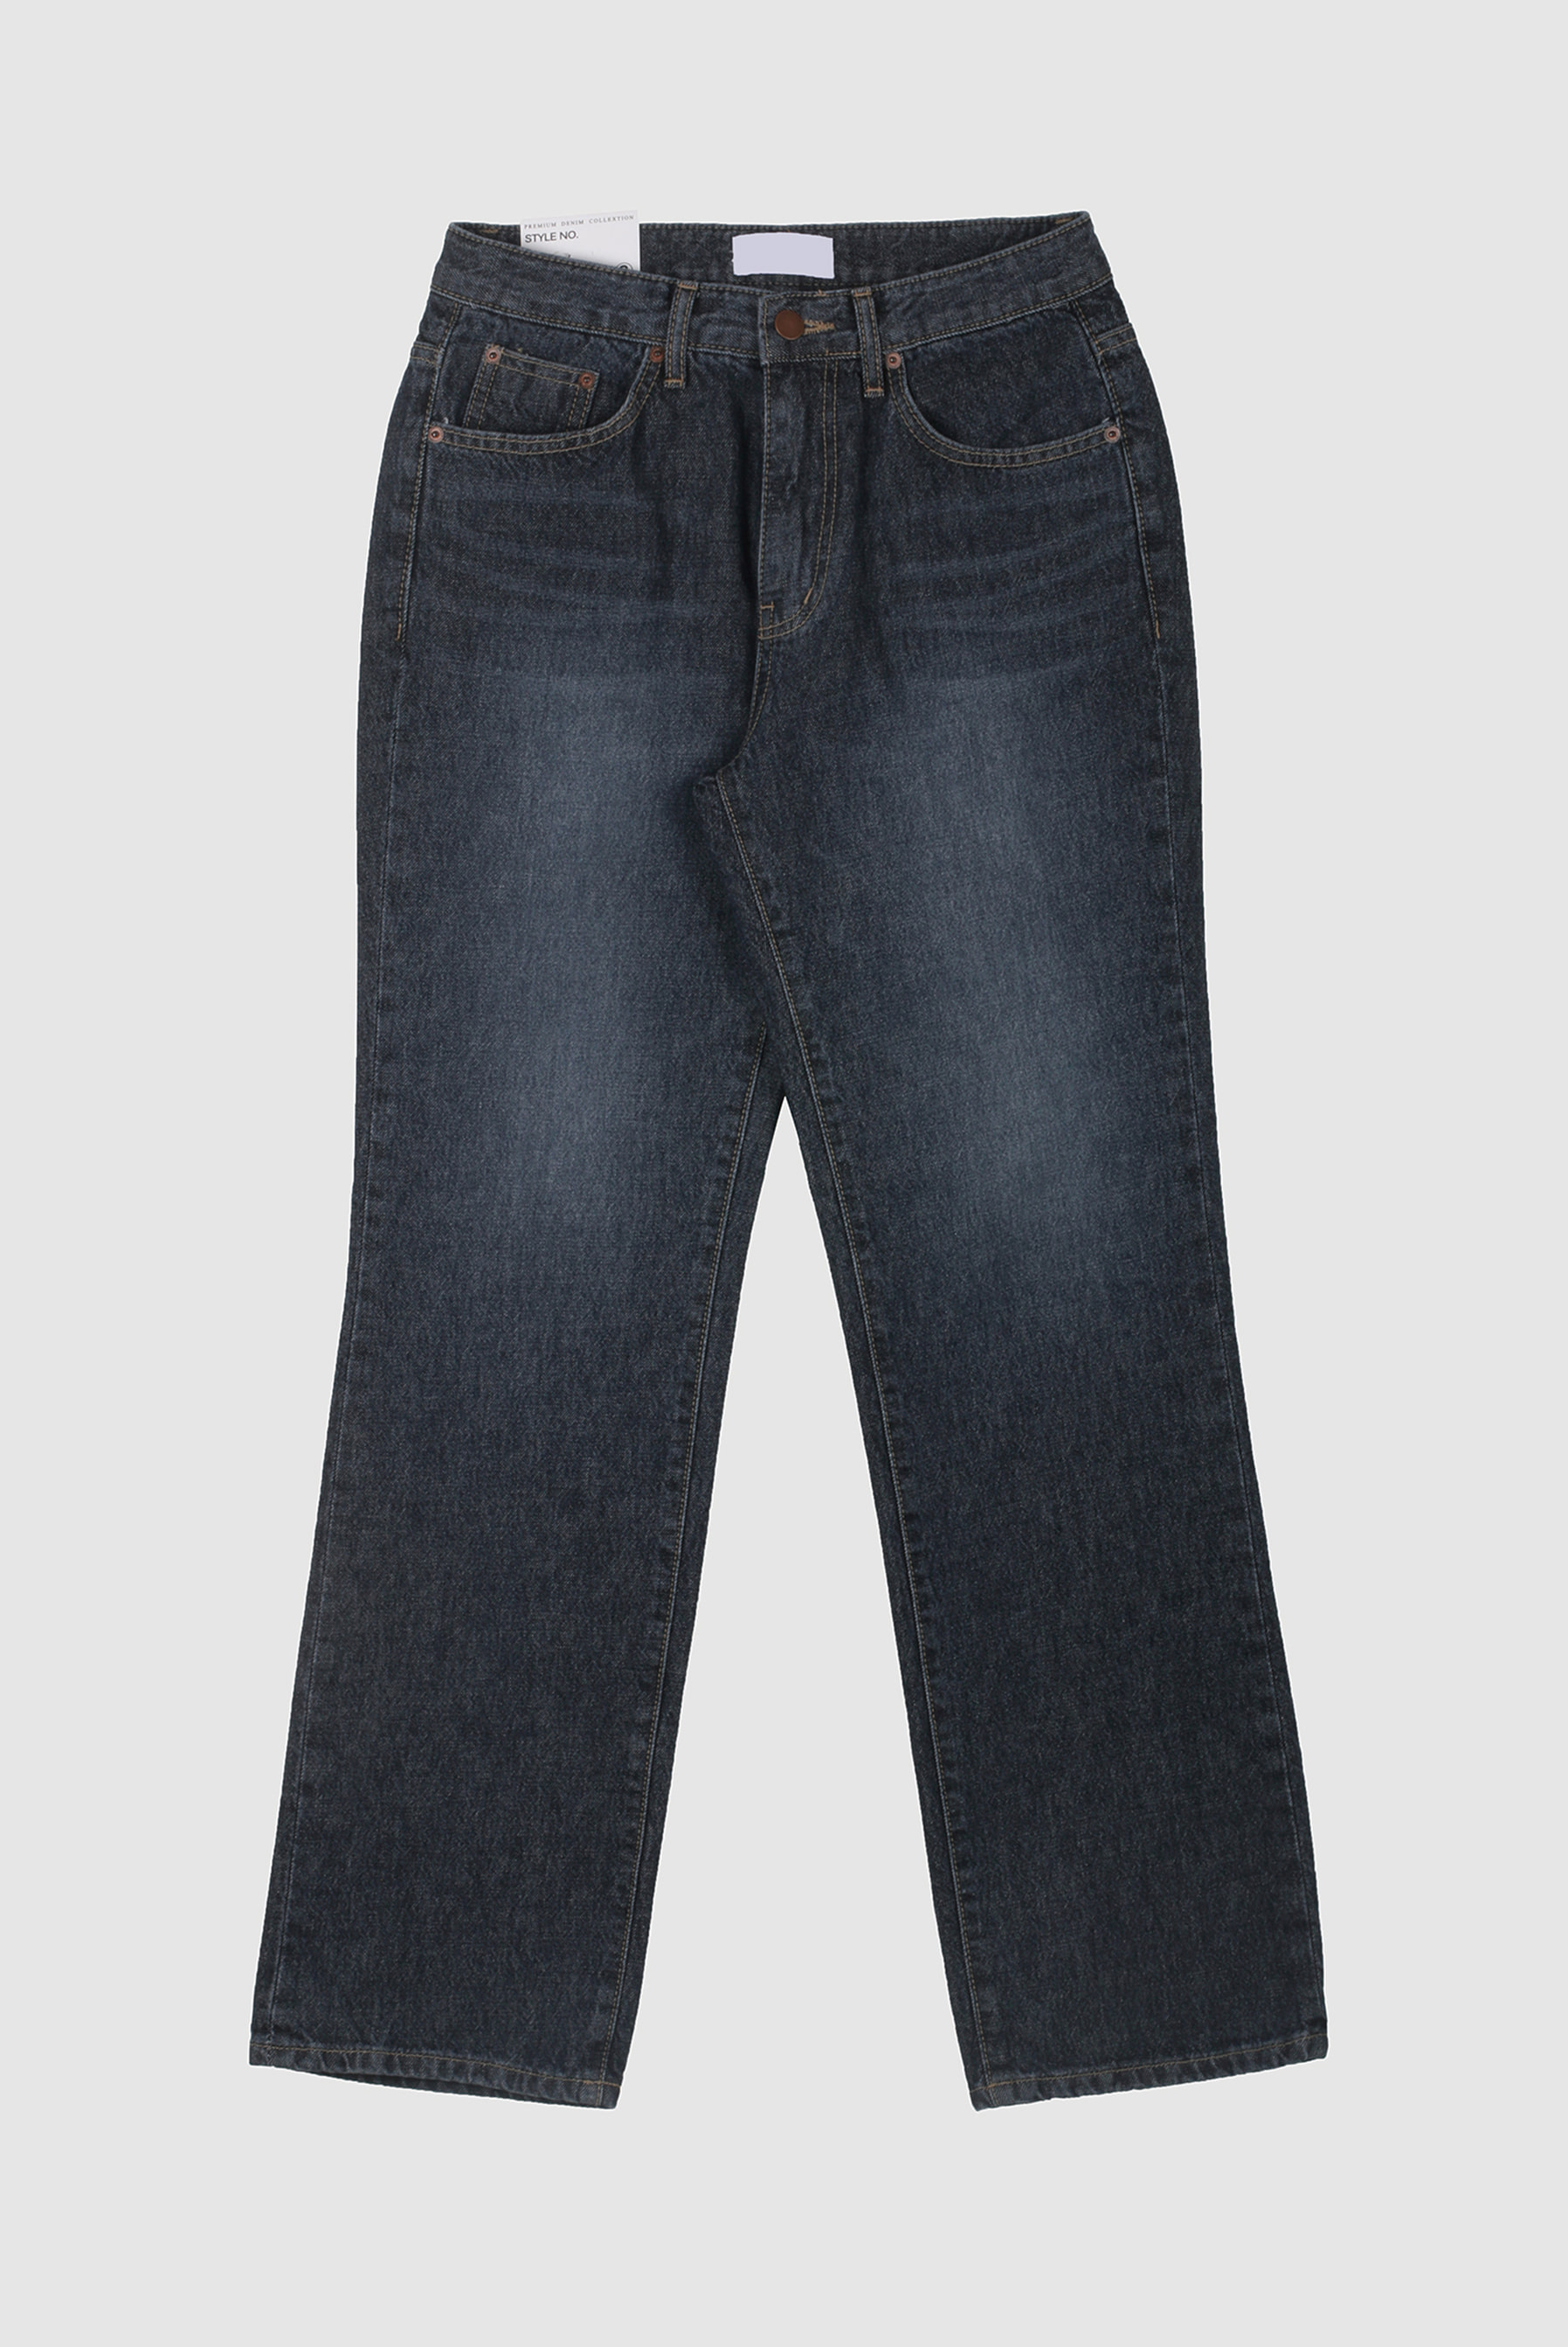 Dip_Blue Long Boot_Cut Jean